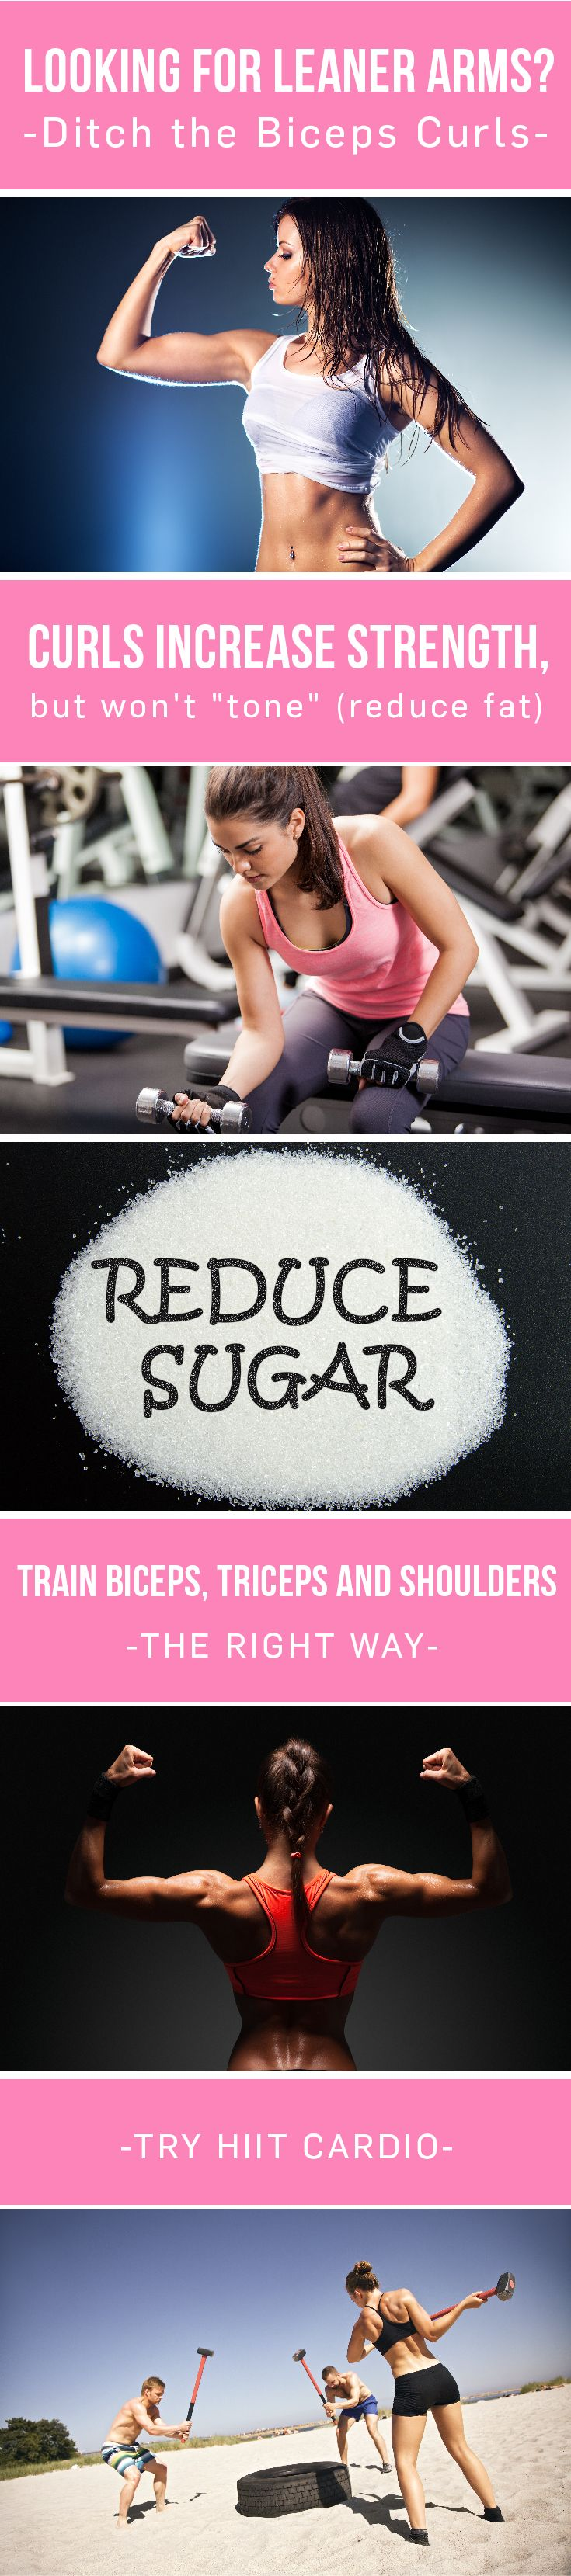 Theres no such thing as reducing fat on a particular area on your body. Bicep curls wont make your arms leaner. Instead reduce sugar calories and do squat-to-lift or -lunge exercises! #fitness #exercise #toning